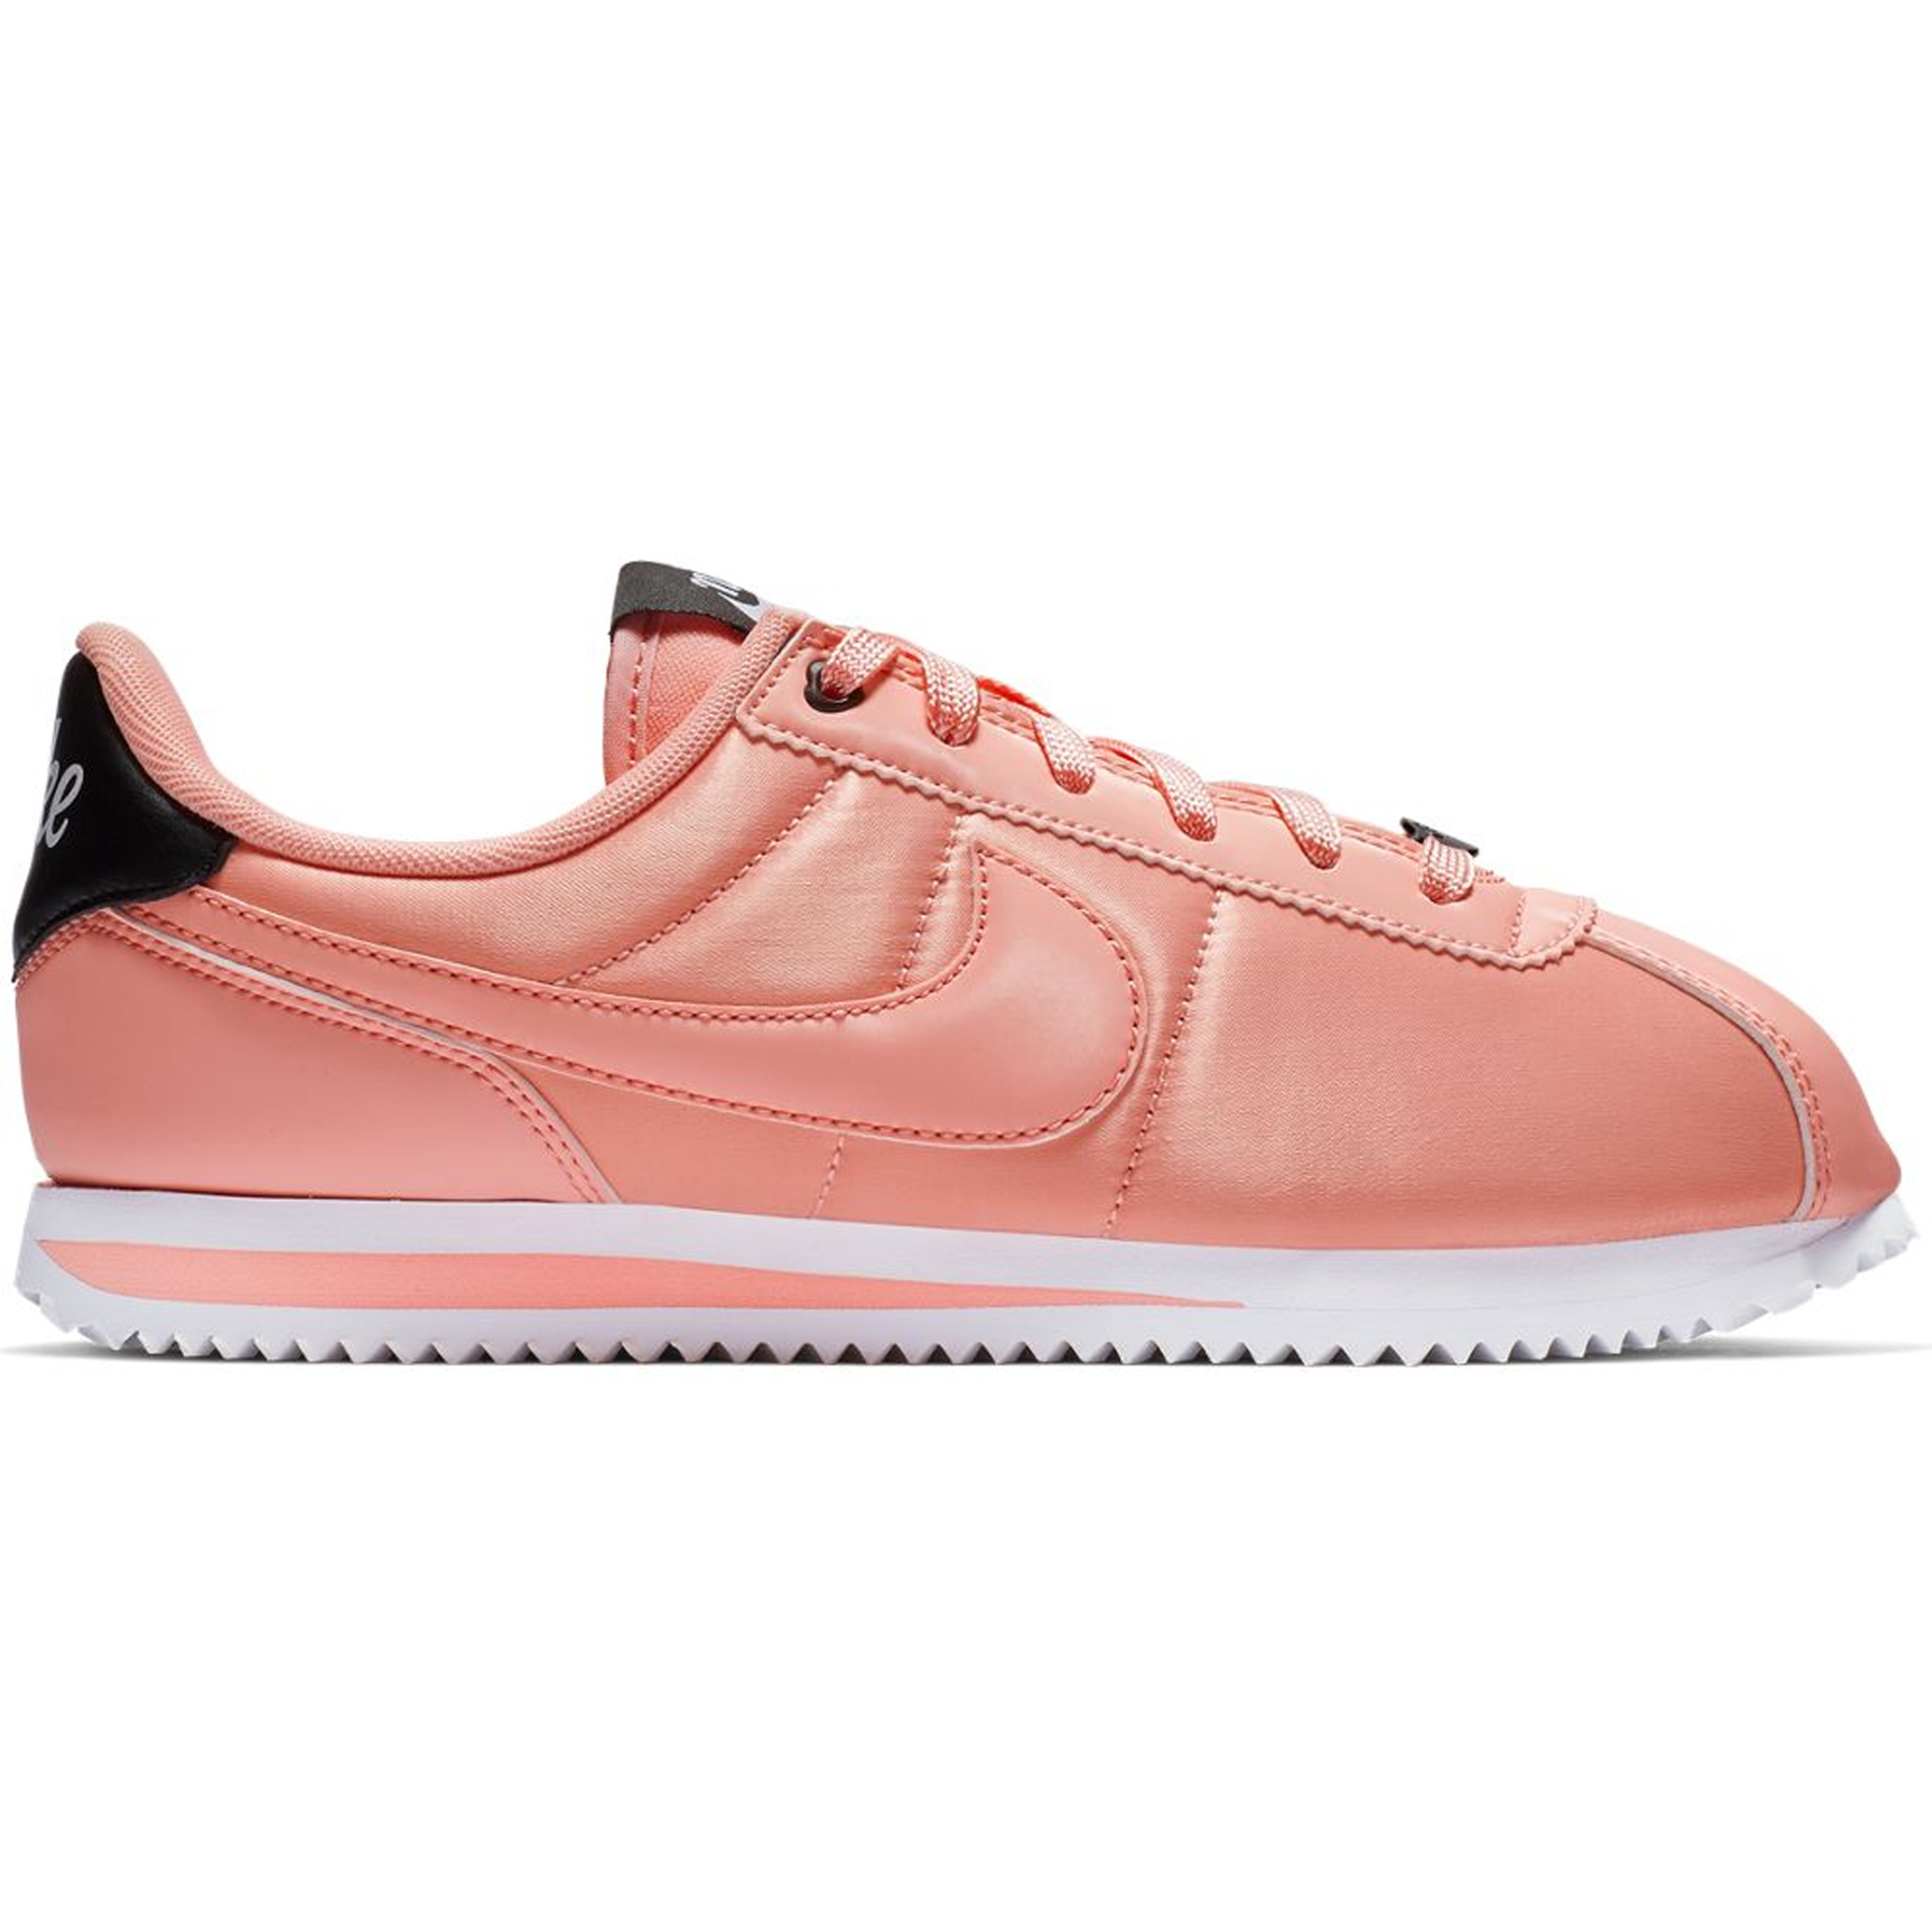 Nike Cortez Basic Valentines Day 2019 Bleached Coral (GS) (AV3519-600)